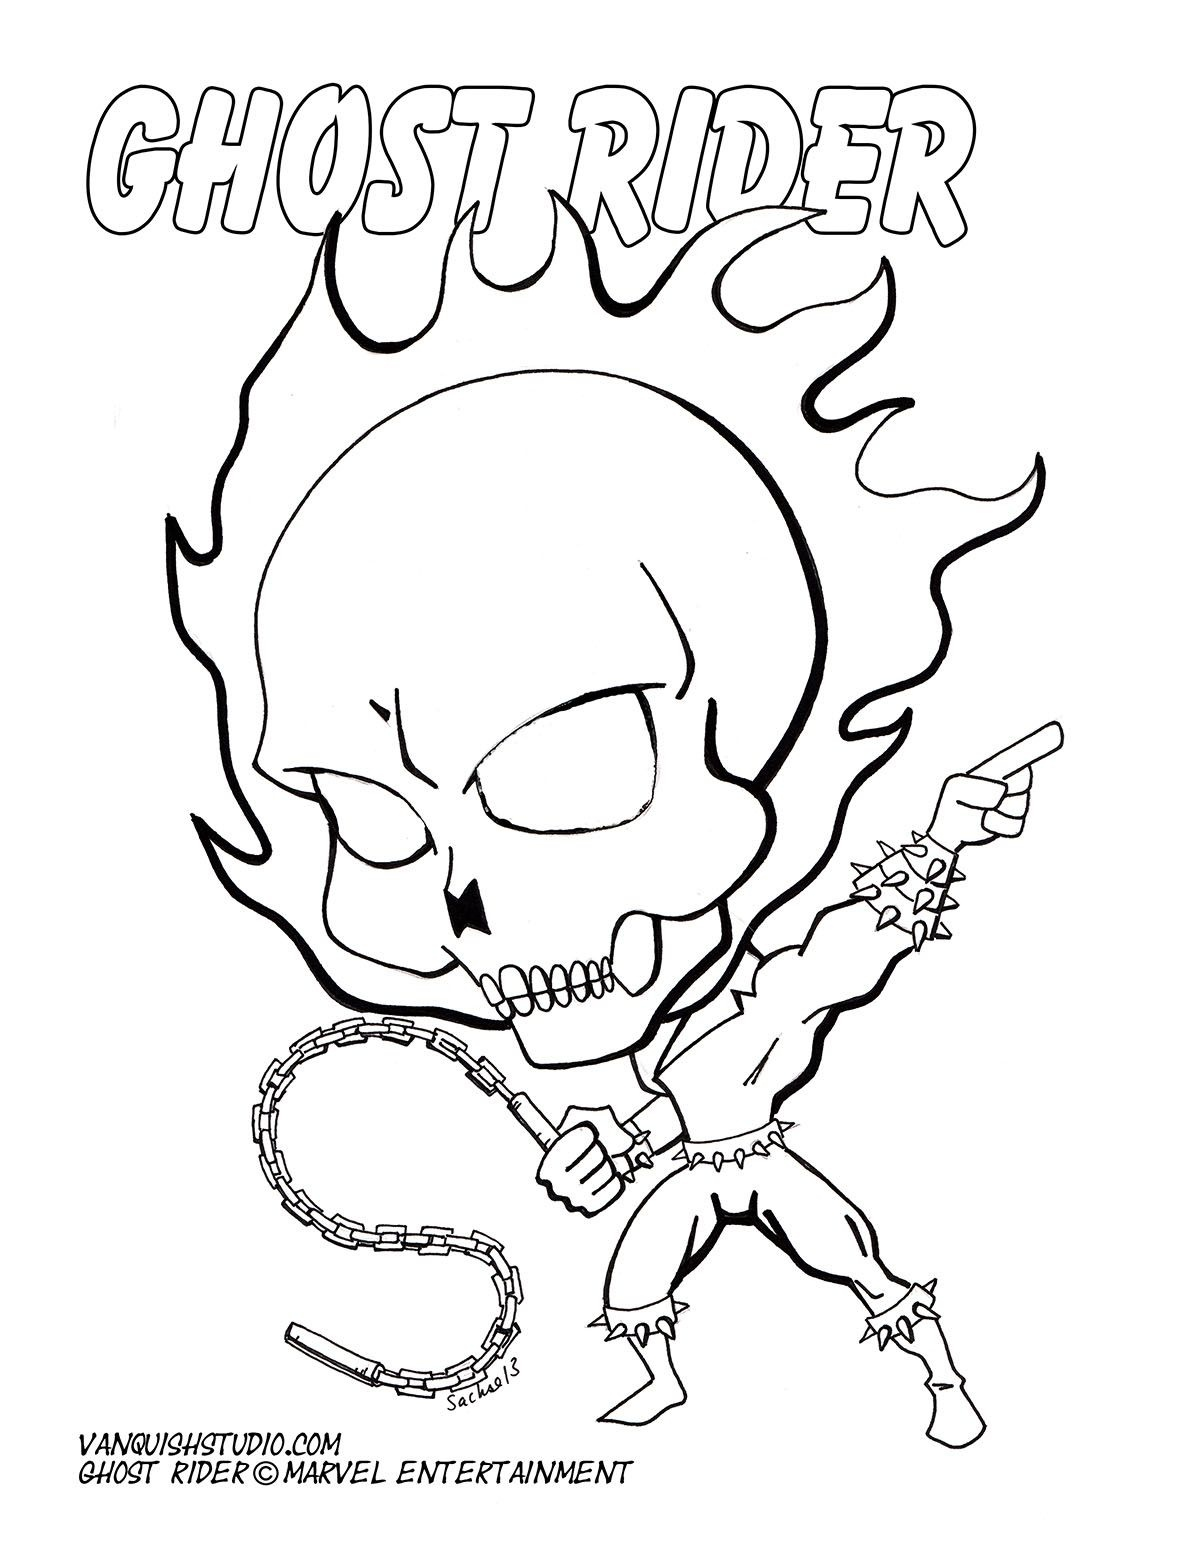 Free Coloring Page Of Chibi Ghostrider. | 48 Best Chibi-Fusion - Free Printable Ghost Rider Coloring Pages